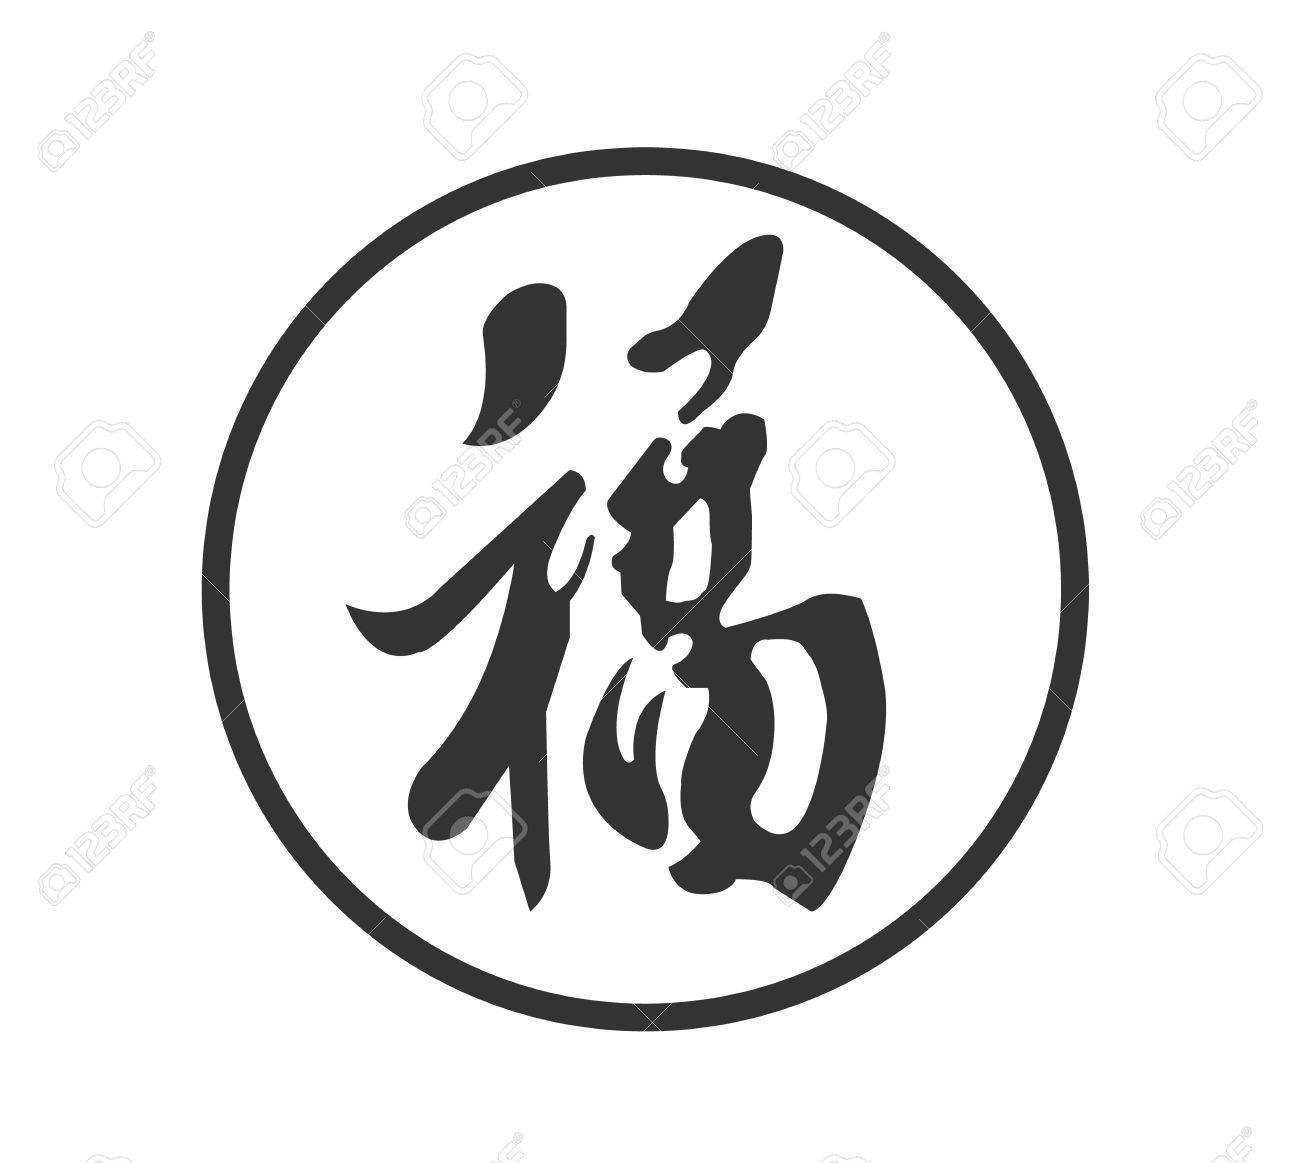 List Of Synonyms And Antonyms Of The Word Fu Symbol